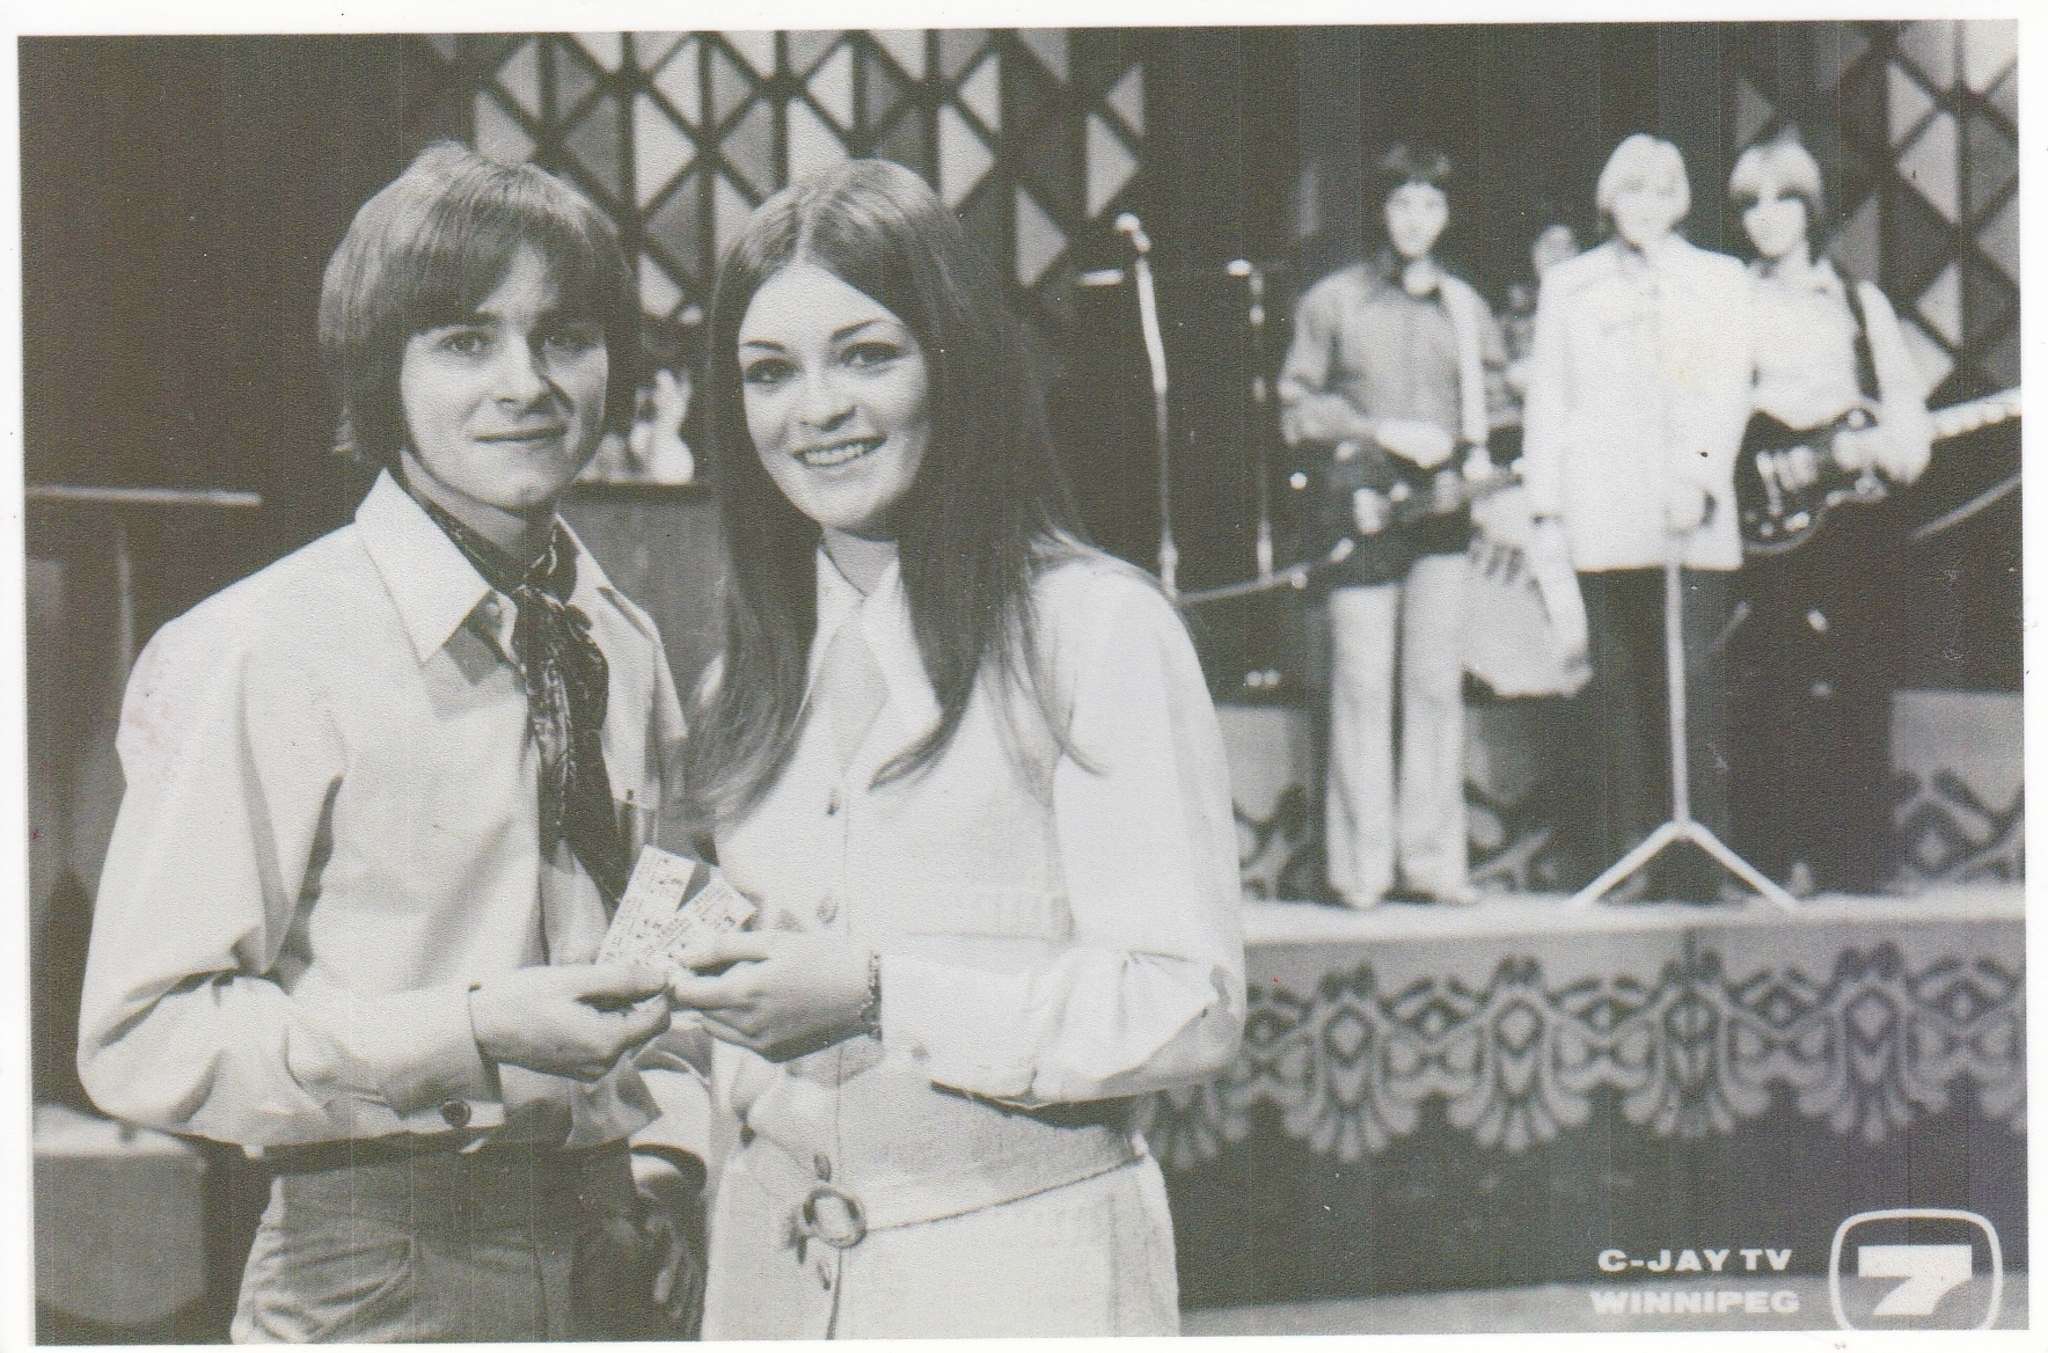 Gregorash, at 19, began co-hosting a show called Young As You Are on CJAY-TV in Winnipeg. (Supplied photo)